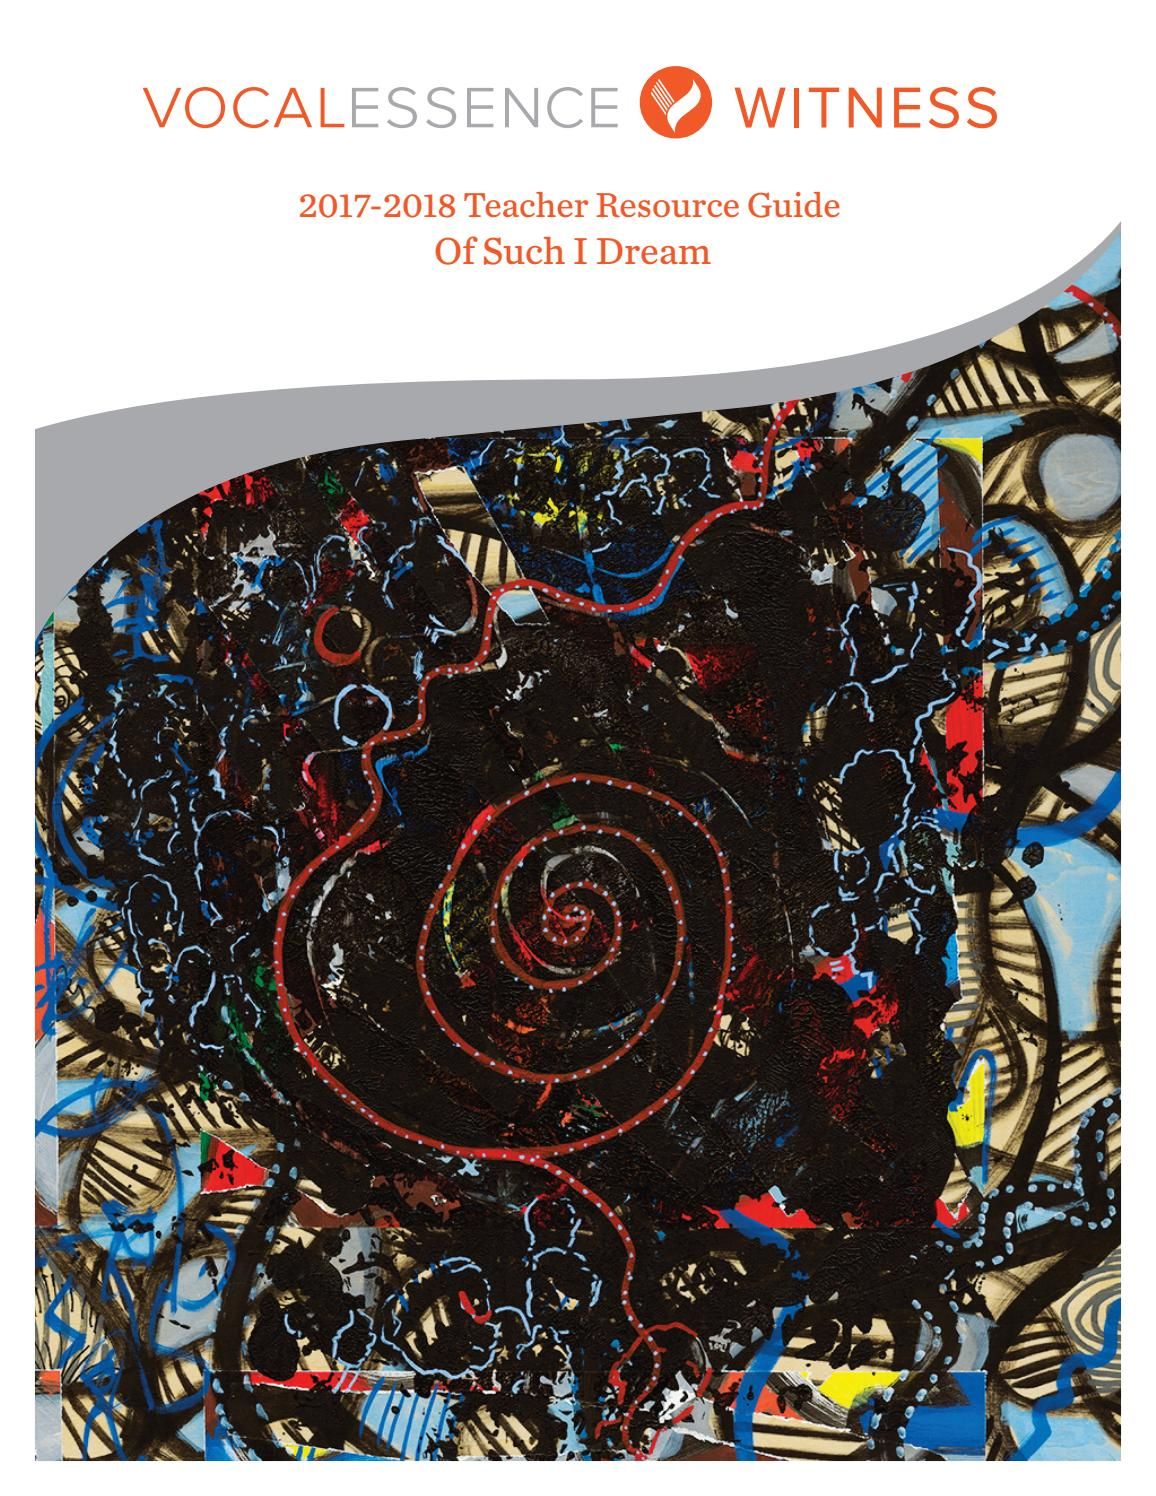 2017 2018 VocalEssence WITNESS Teacher Resource Guide by